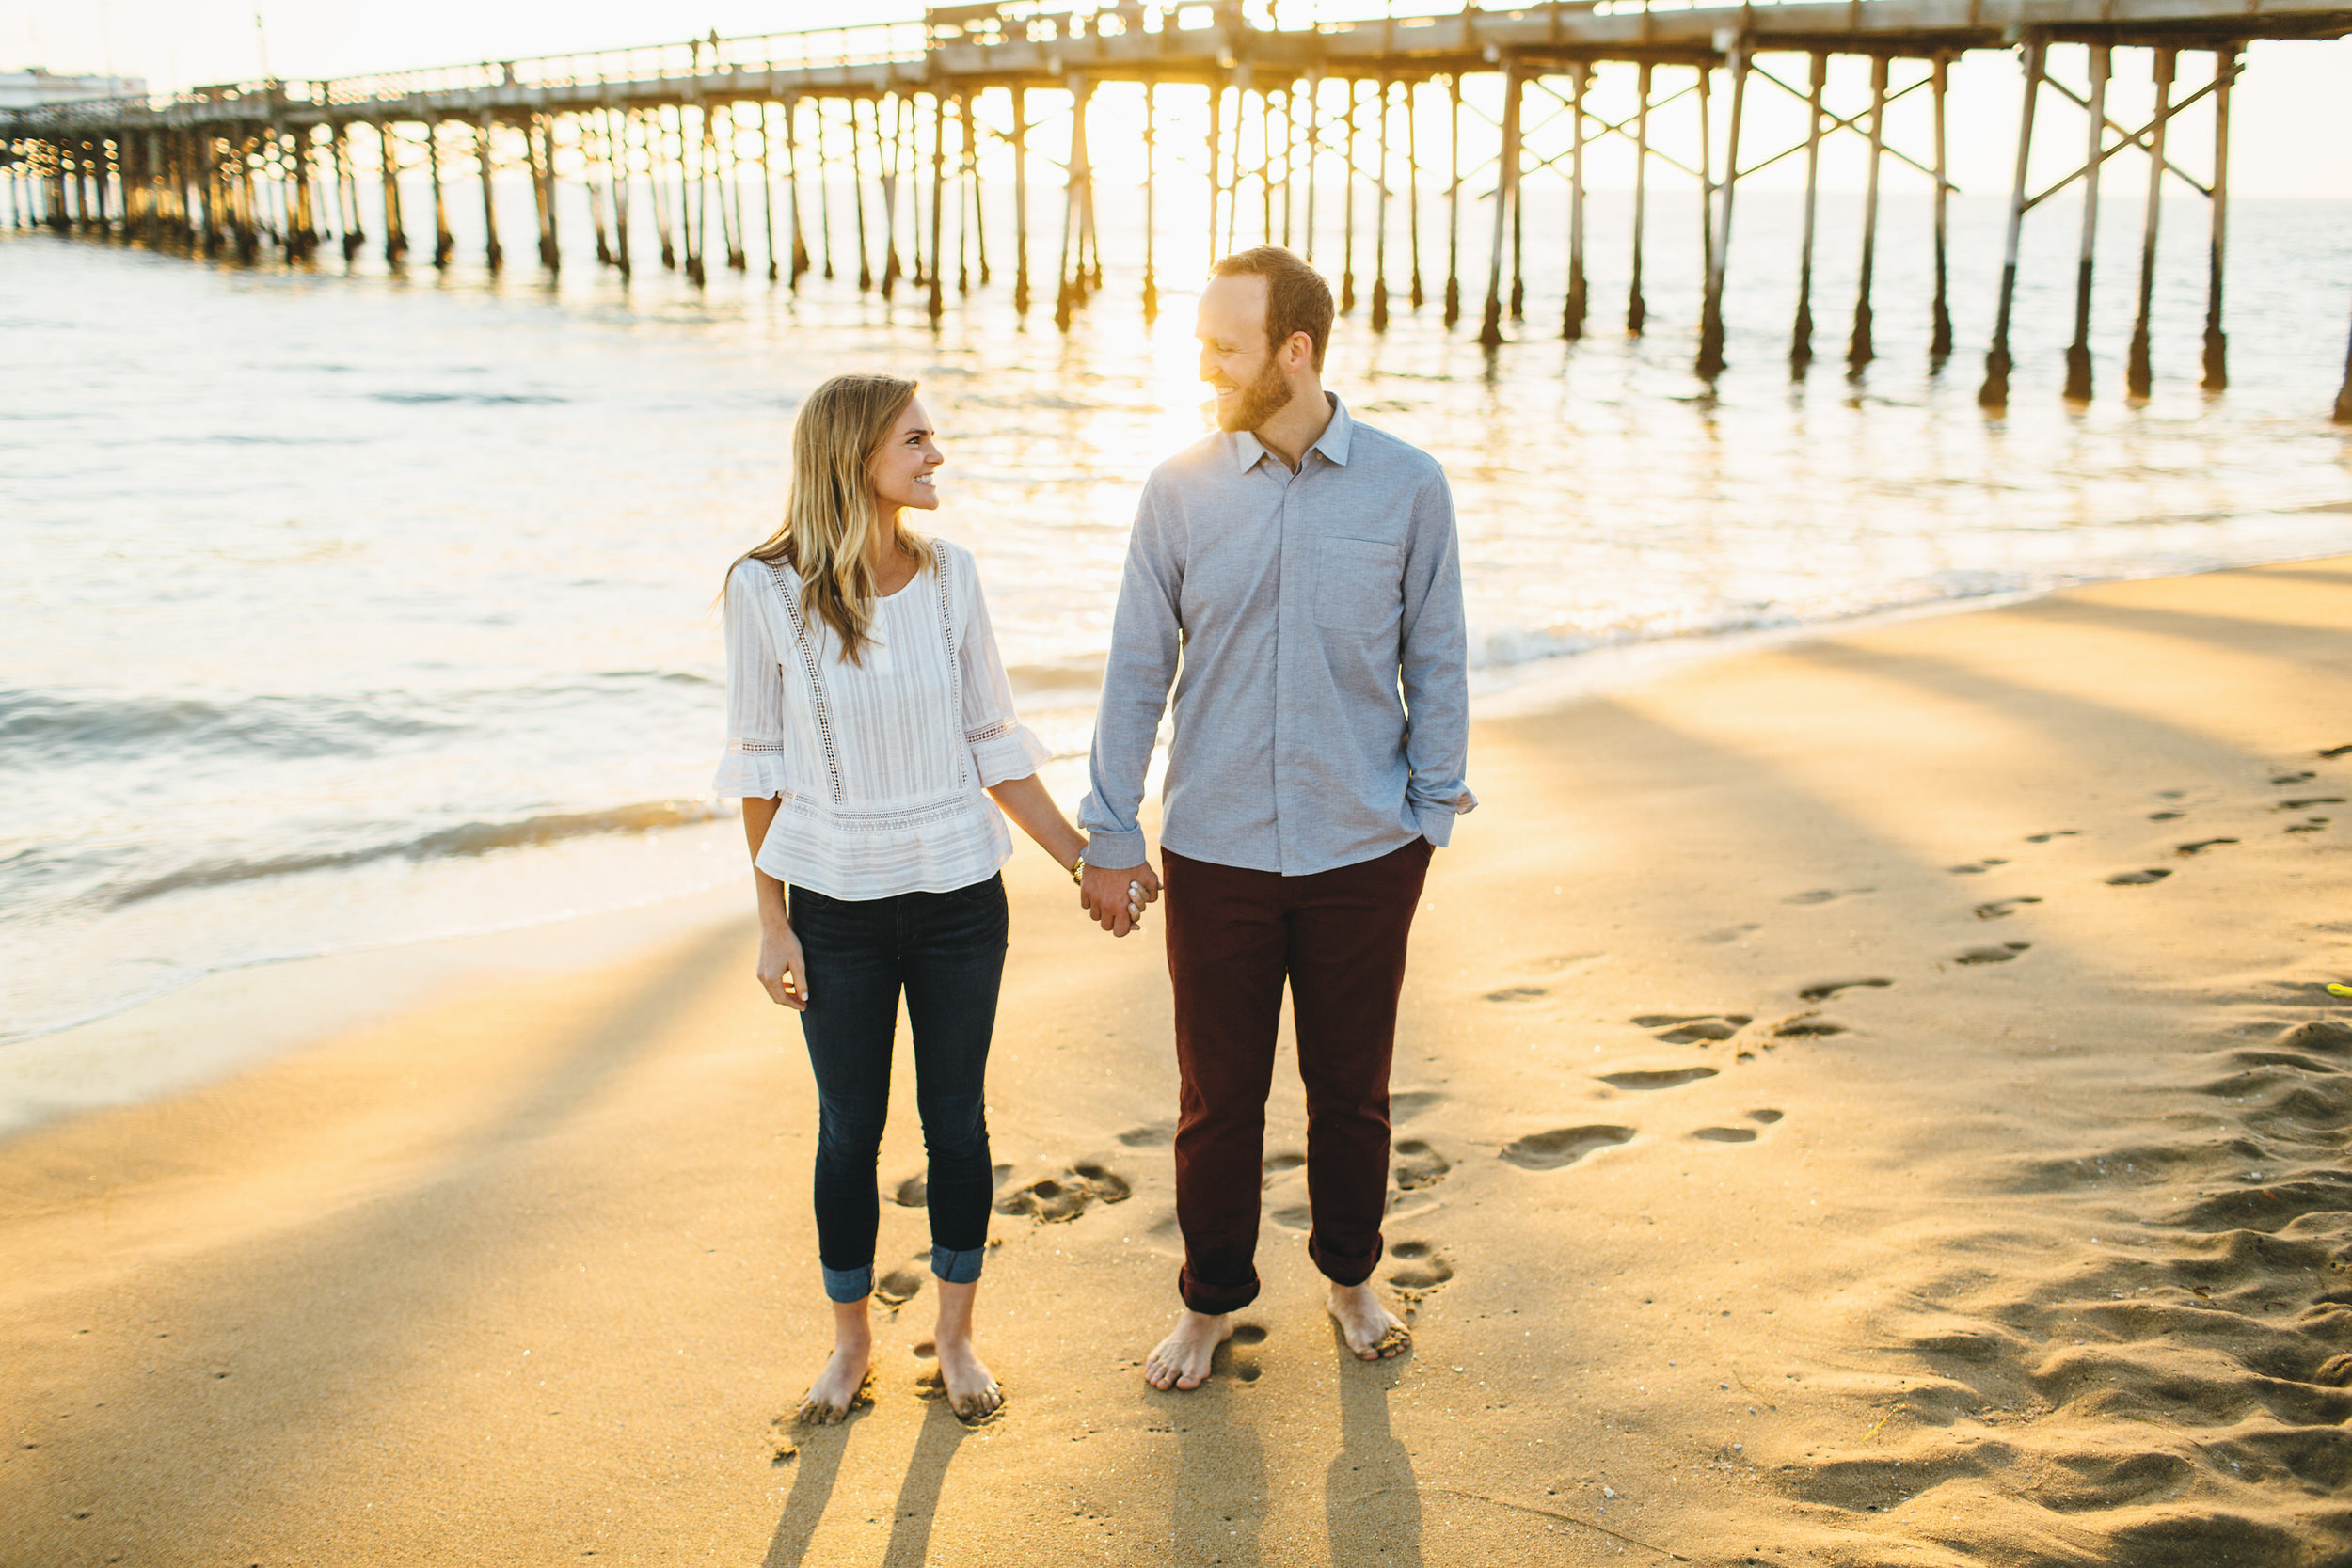 Newport-Beach-Engagement-39.jpg